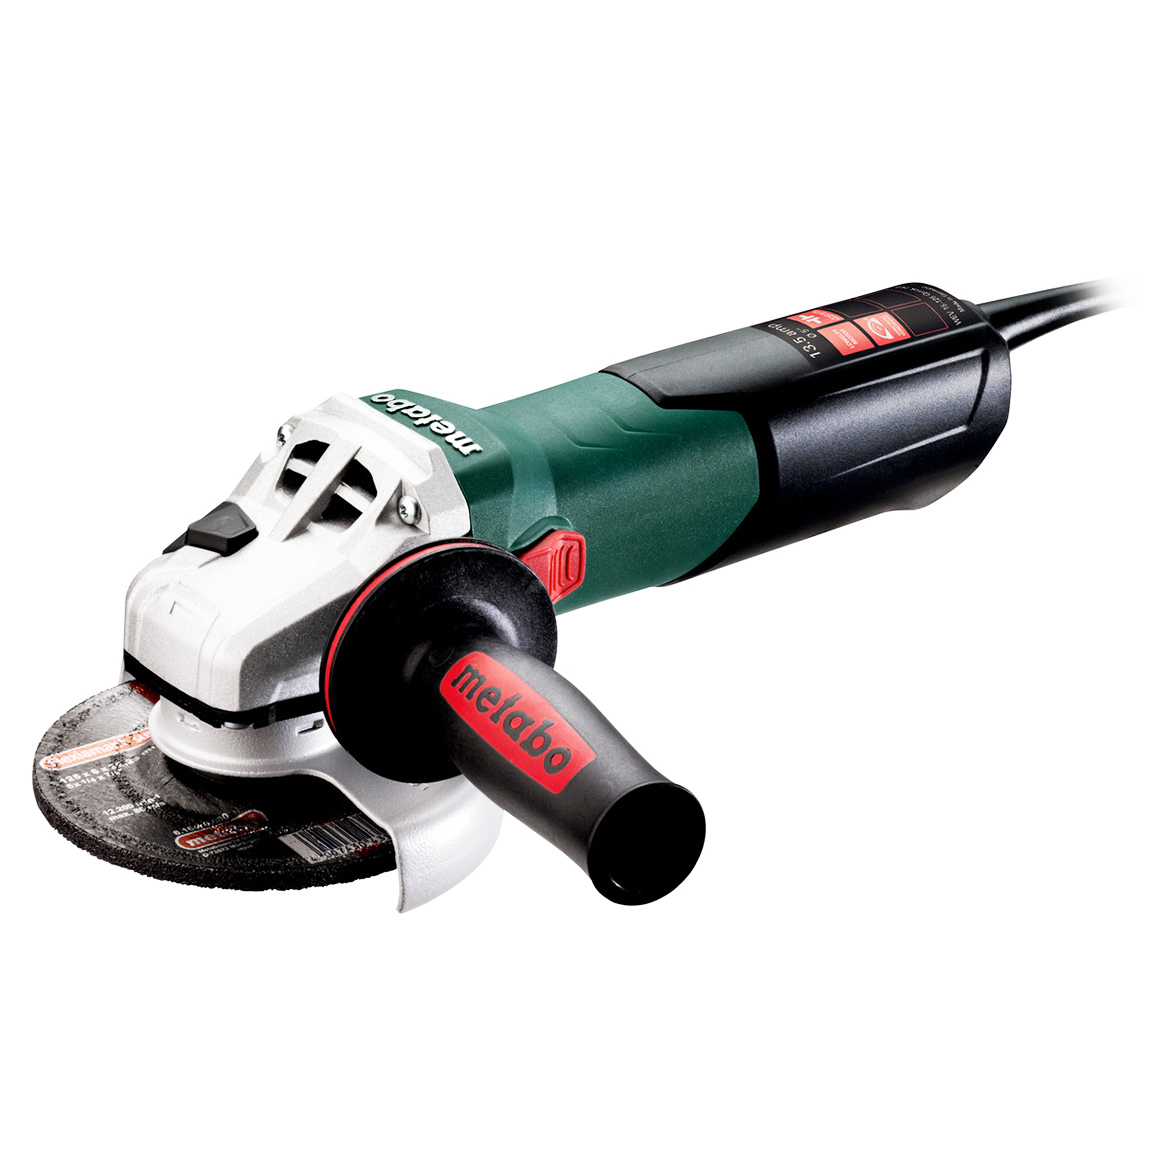 Metabo 600562420 5-Inch 13.5-Amp 2,800-9,600 RPM Angle Grinder with Lock-On